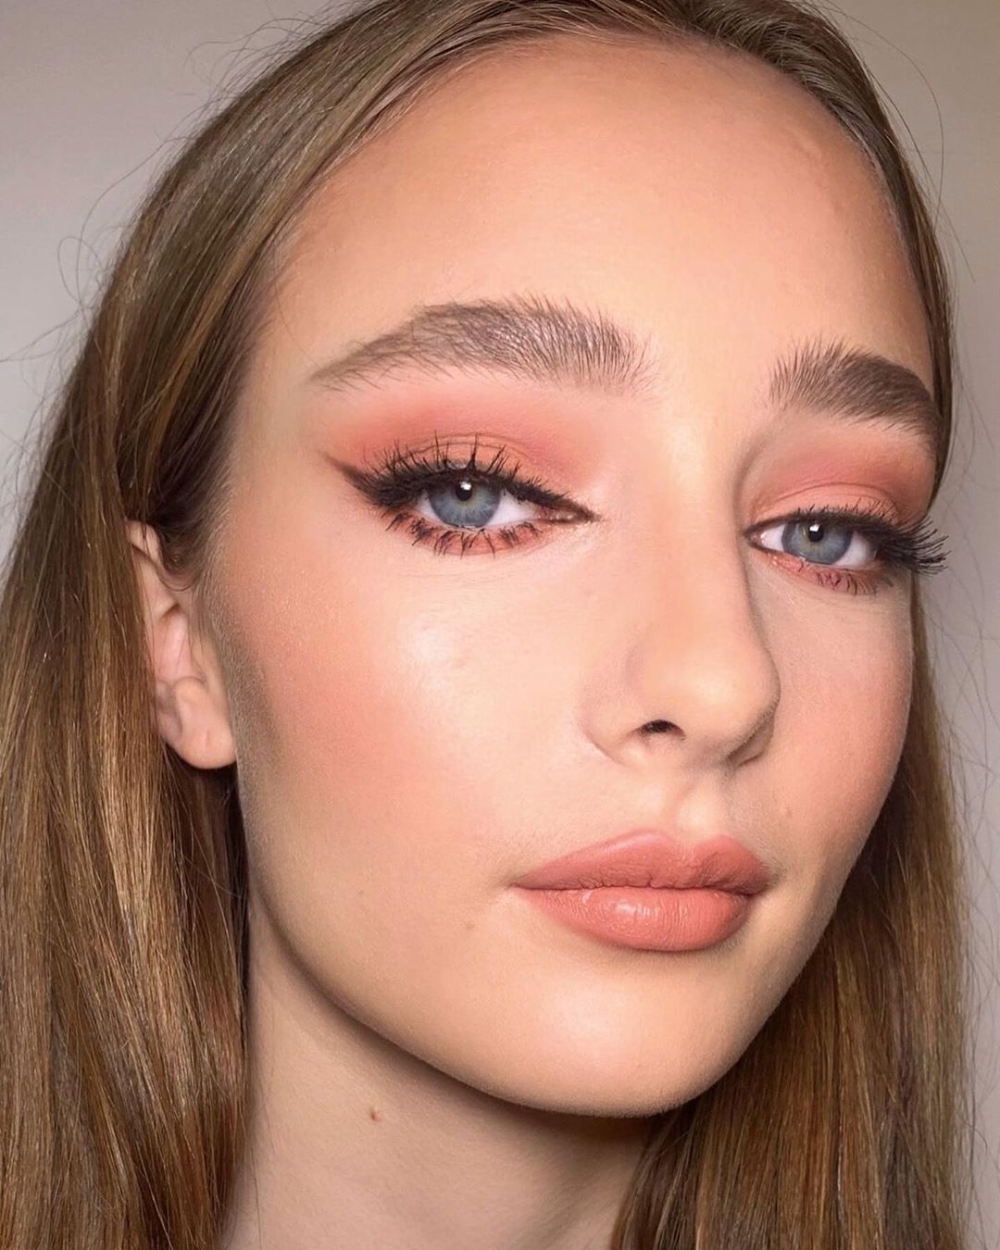 Pin on Makeup on Point